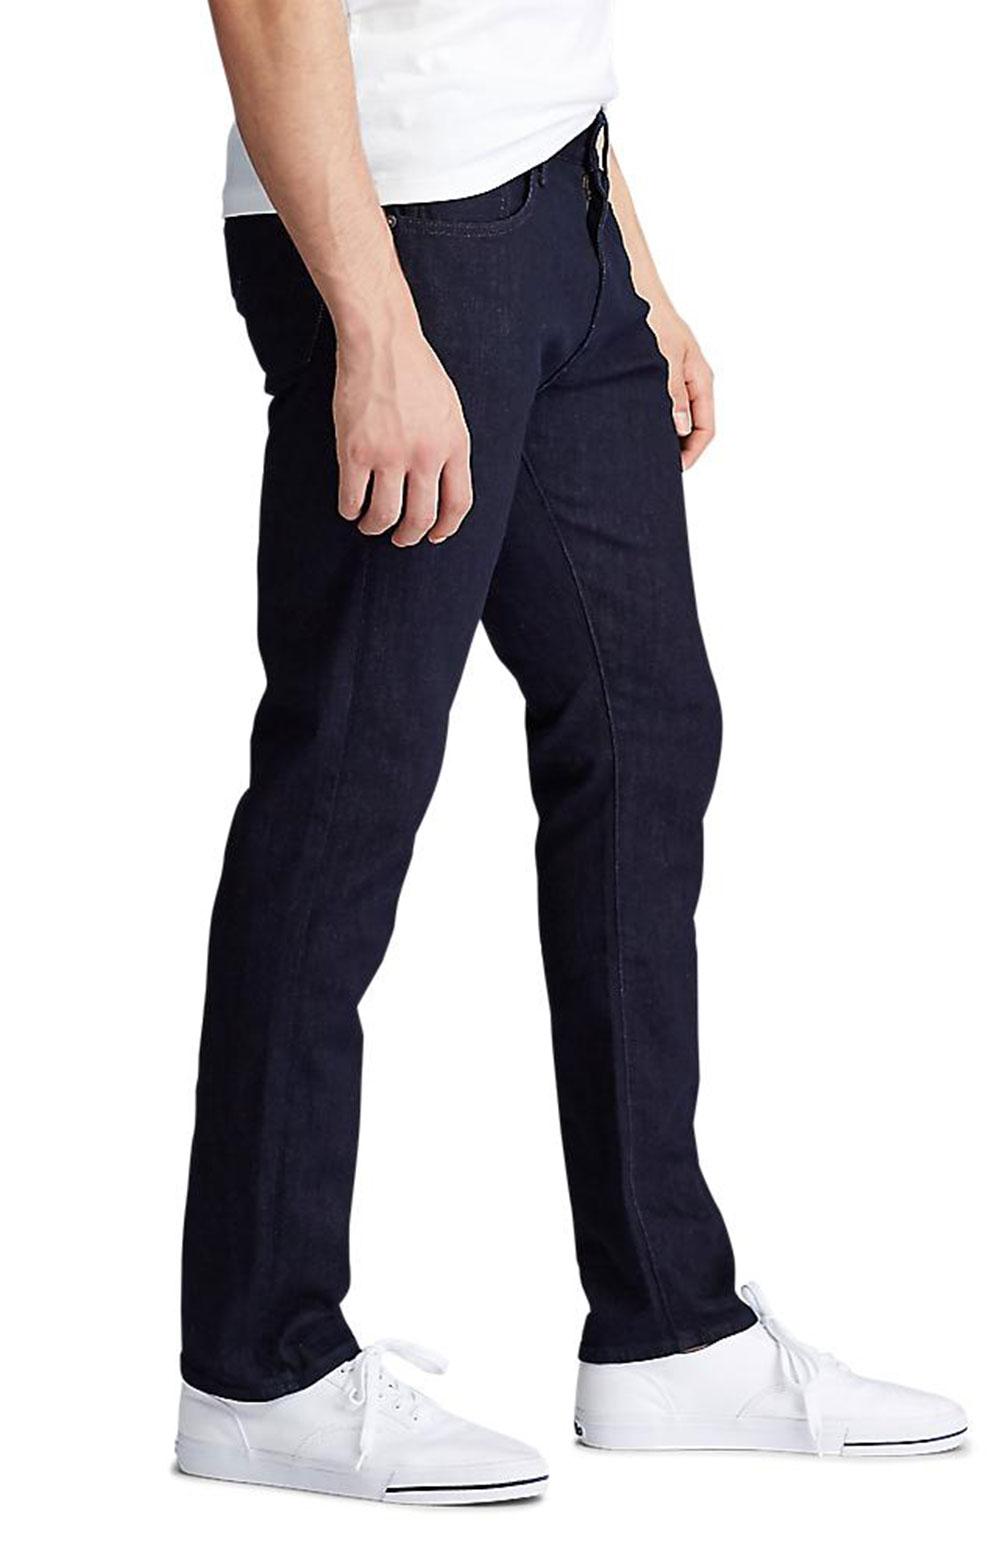 Varick Slim Straight Jeans - Miller Stretch BSR 3